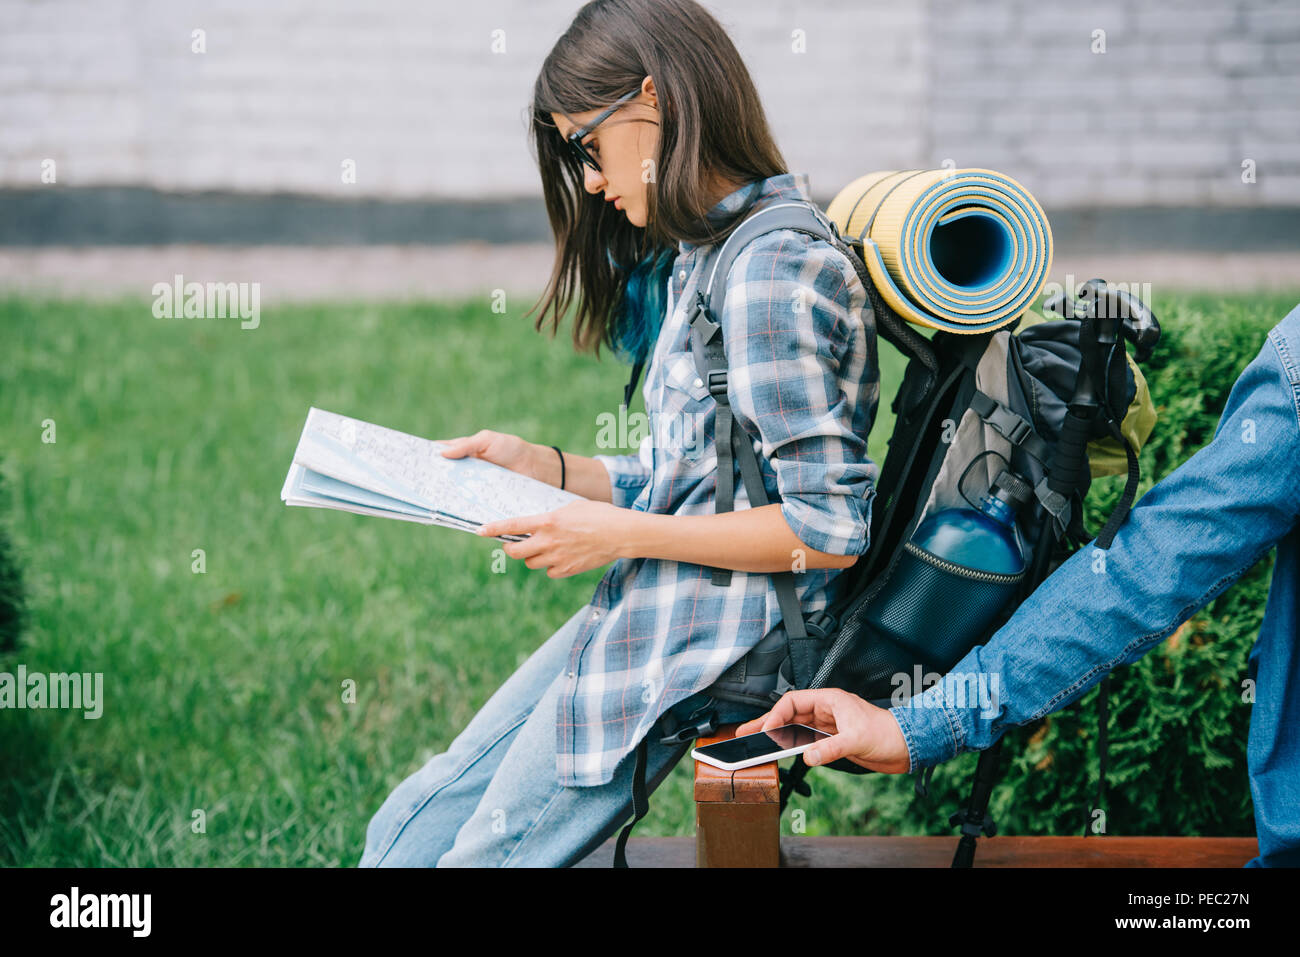 side view of girl traveler holding map while thief stealing smartphone - Stock Image